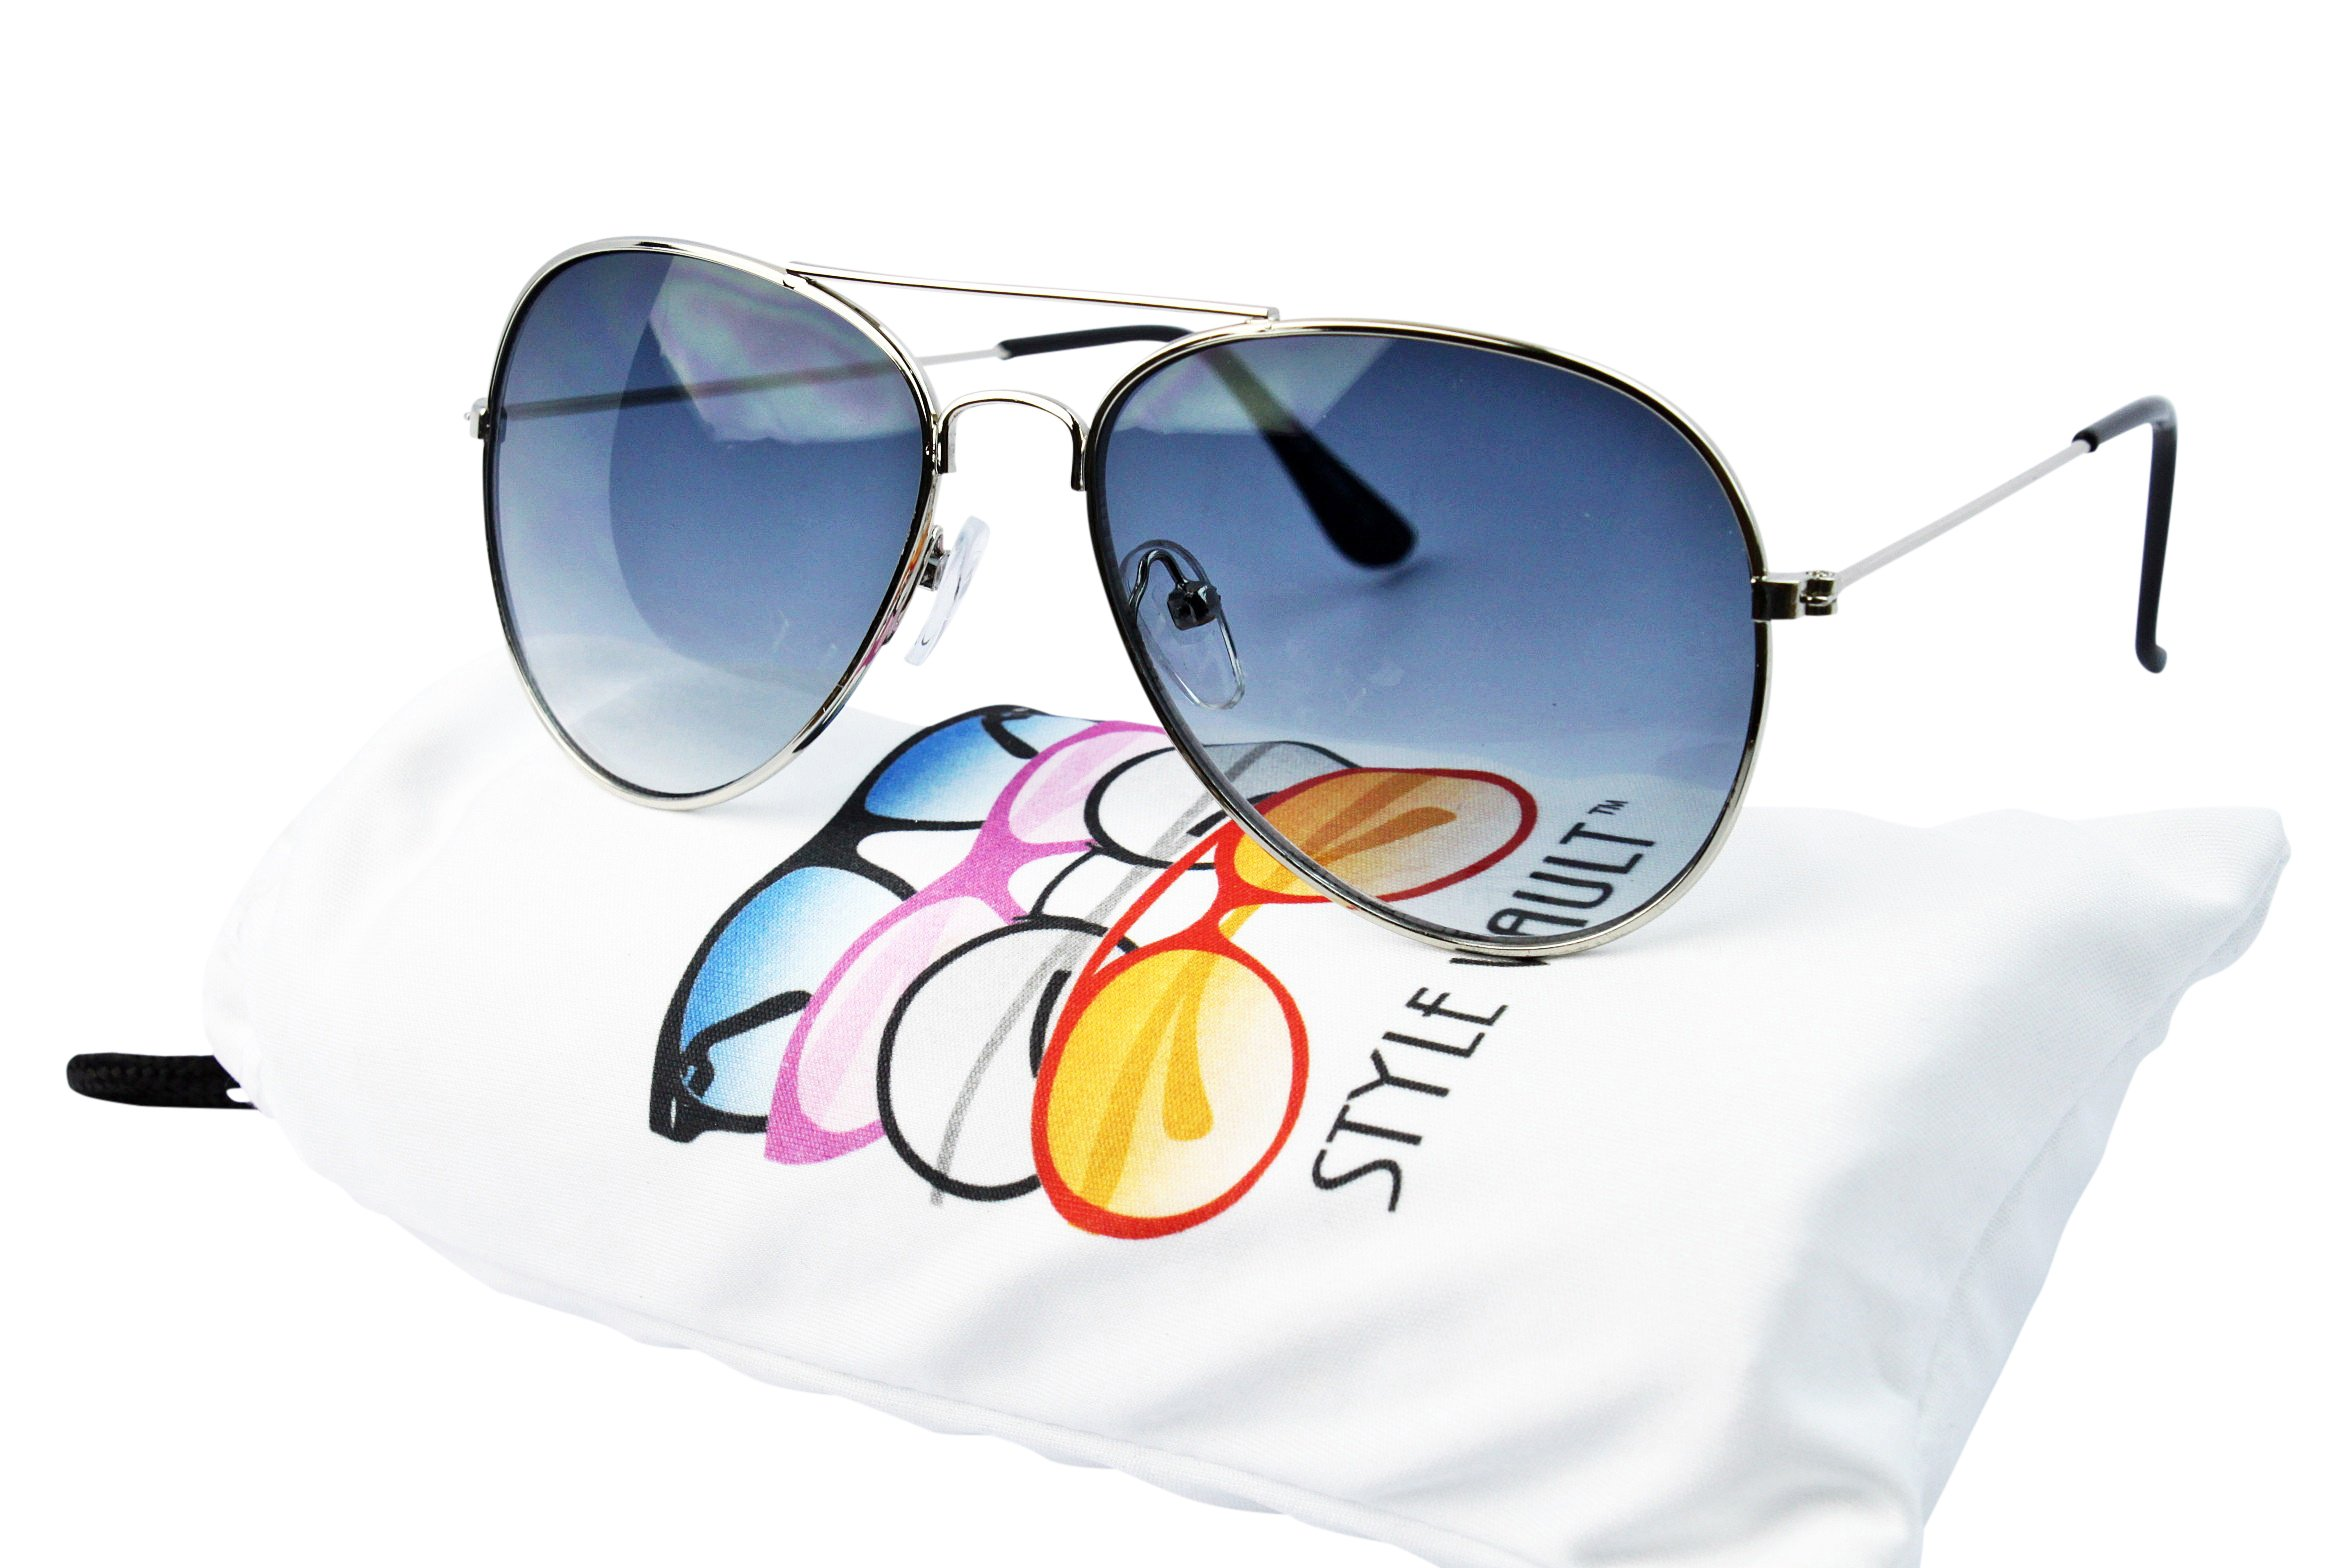 Kd202-vp Style Vault() Kids Child(2~9yr Old) Aviator Sunglasses (B3099F Silver-smoked) by Style Vault